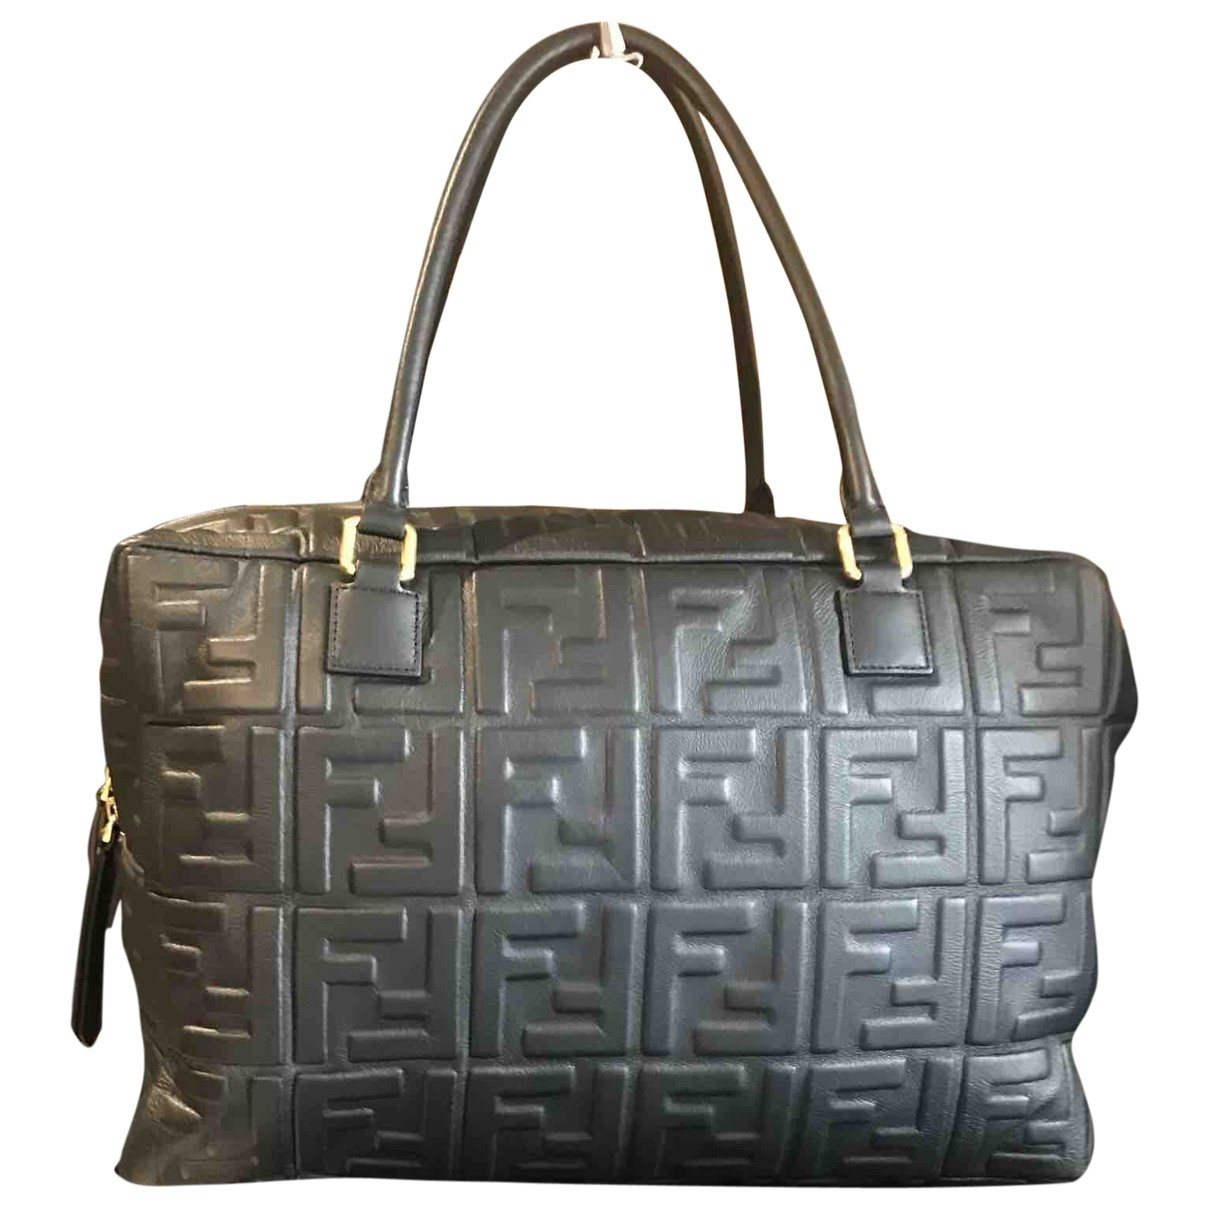 Fendi Double F Black Leather handbag for Women \N